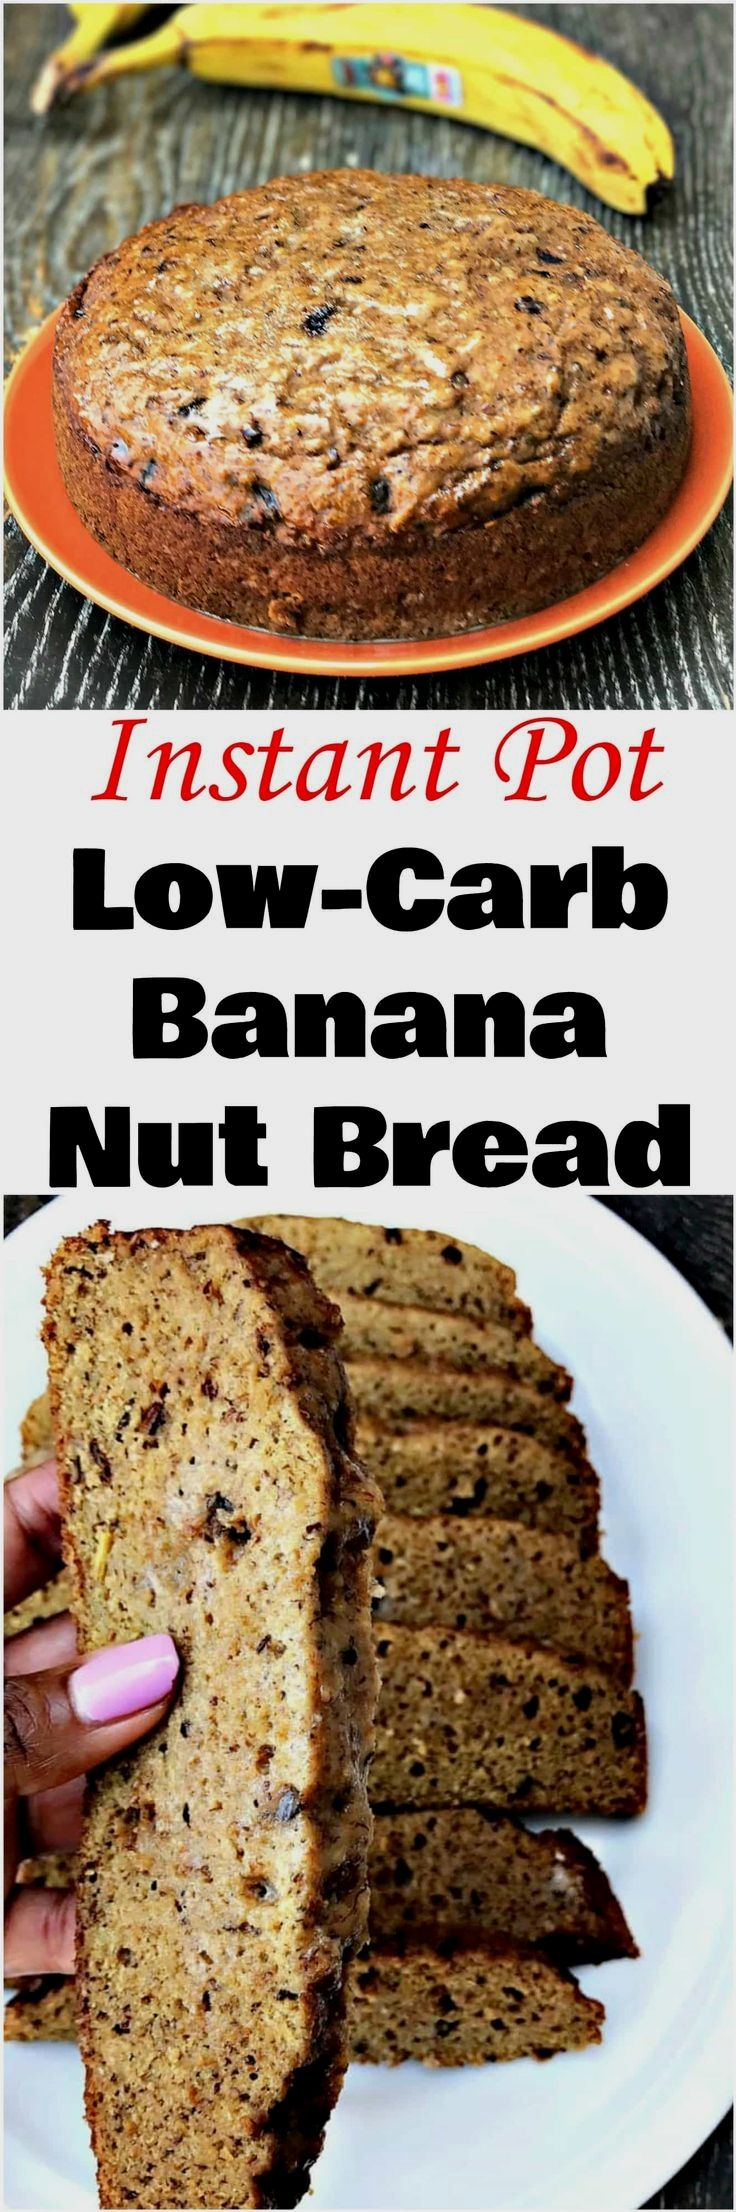 Instant Pot Low-Carb Banana Nut Bread is an easy pressure cooker recipe for homemade, keto friendly, healthy dessert with fruit.